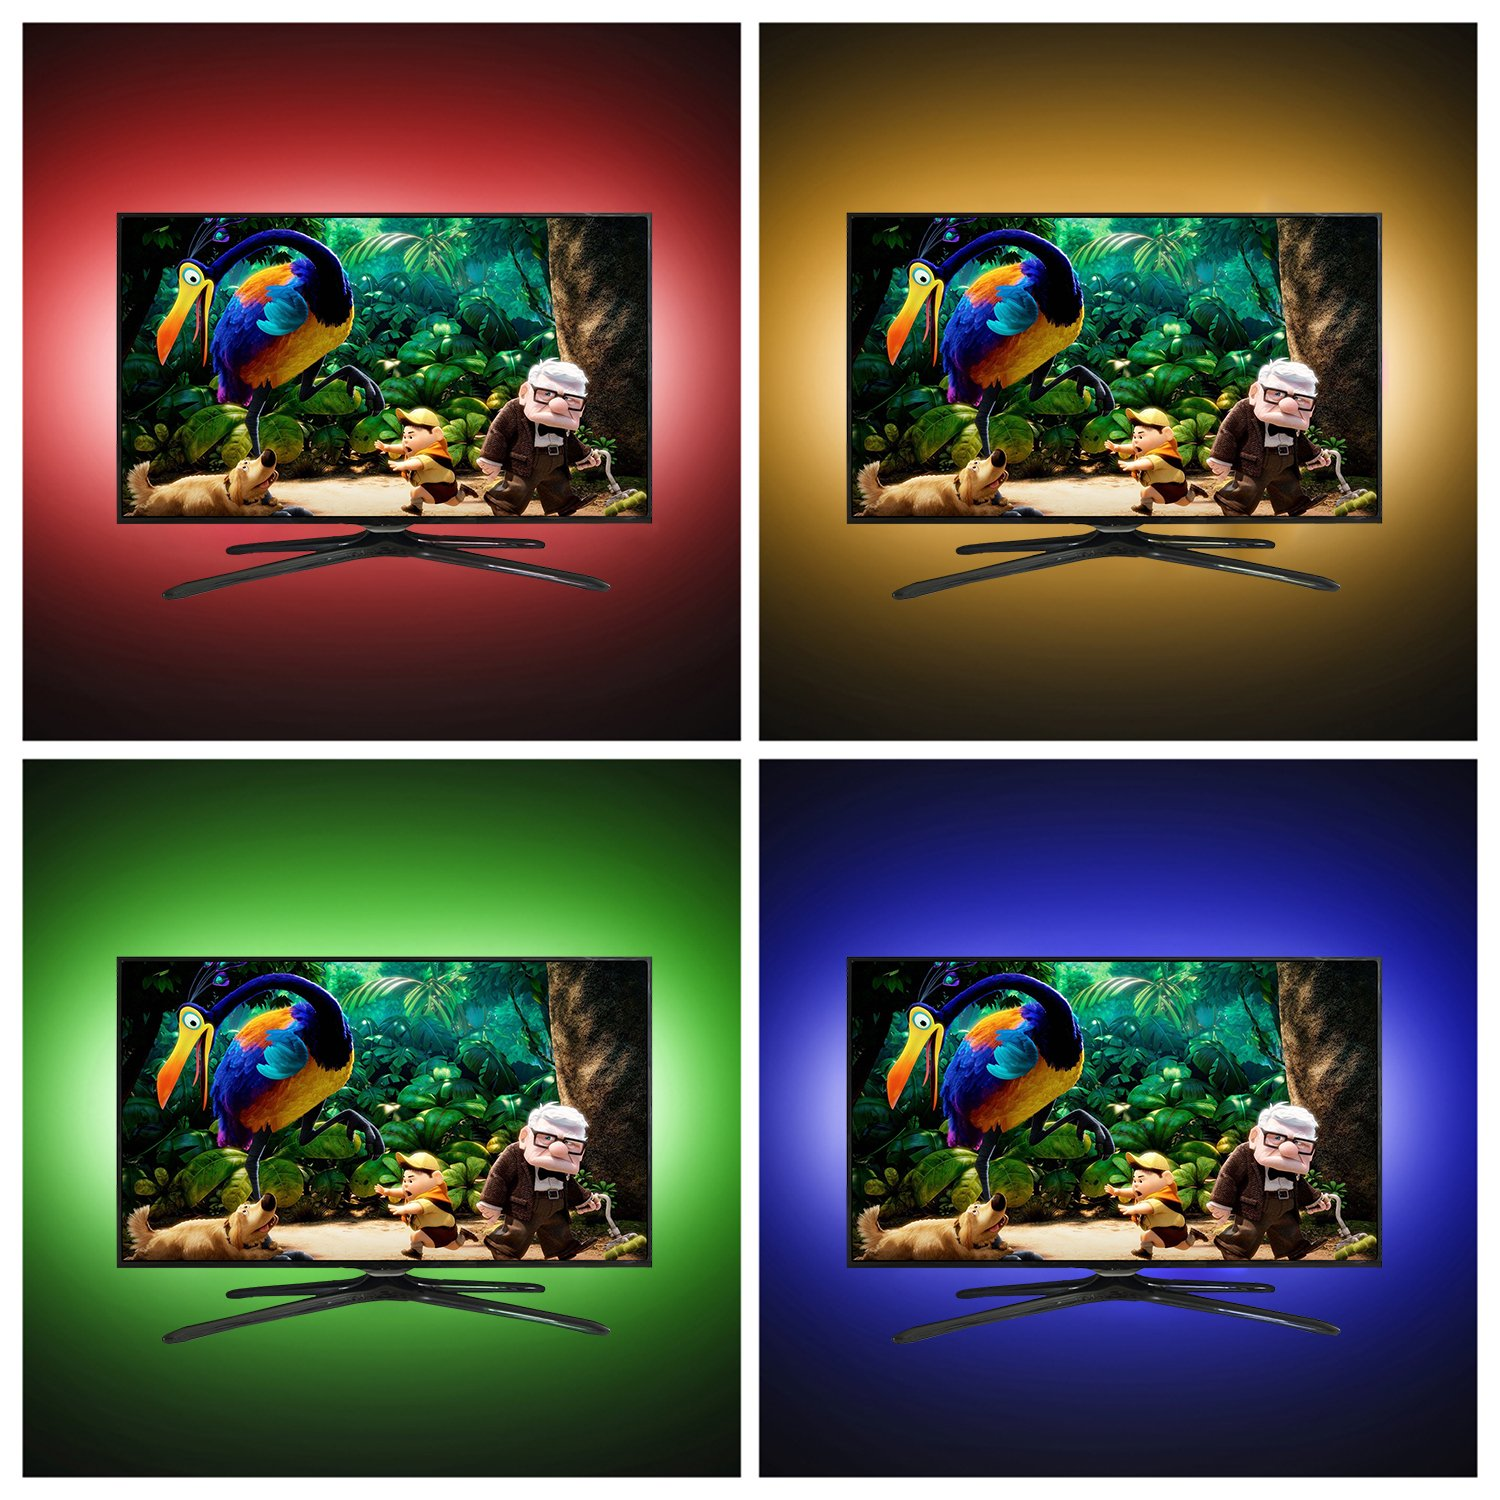 WENICE LED TV backlight 55inch-65inch TV to 70inch, USB LED strip lights Kit 3m/9.9ft with 24key IR Remote - 16 Color 5050 Leds Bias Lighting for HDTV(118in) by WENICE (Image #6)